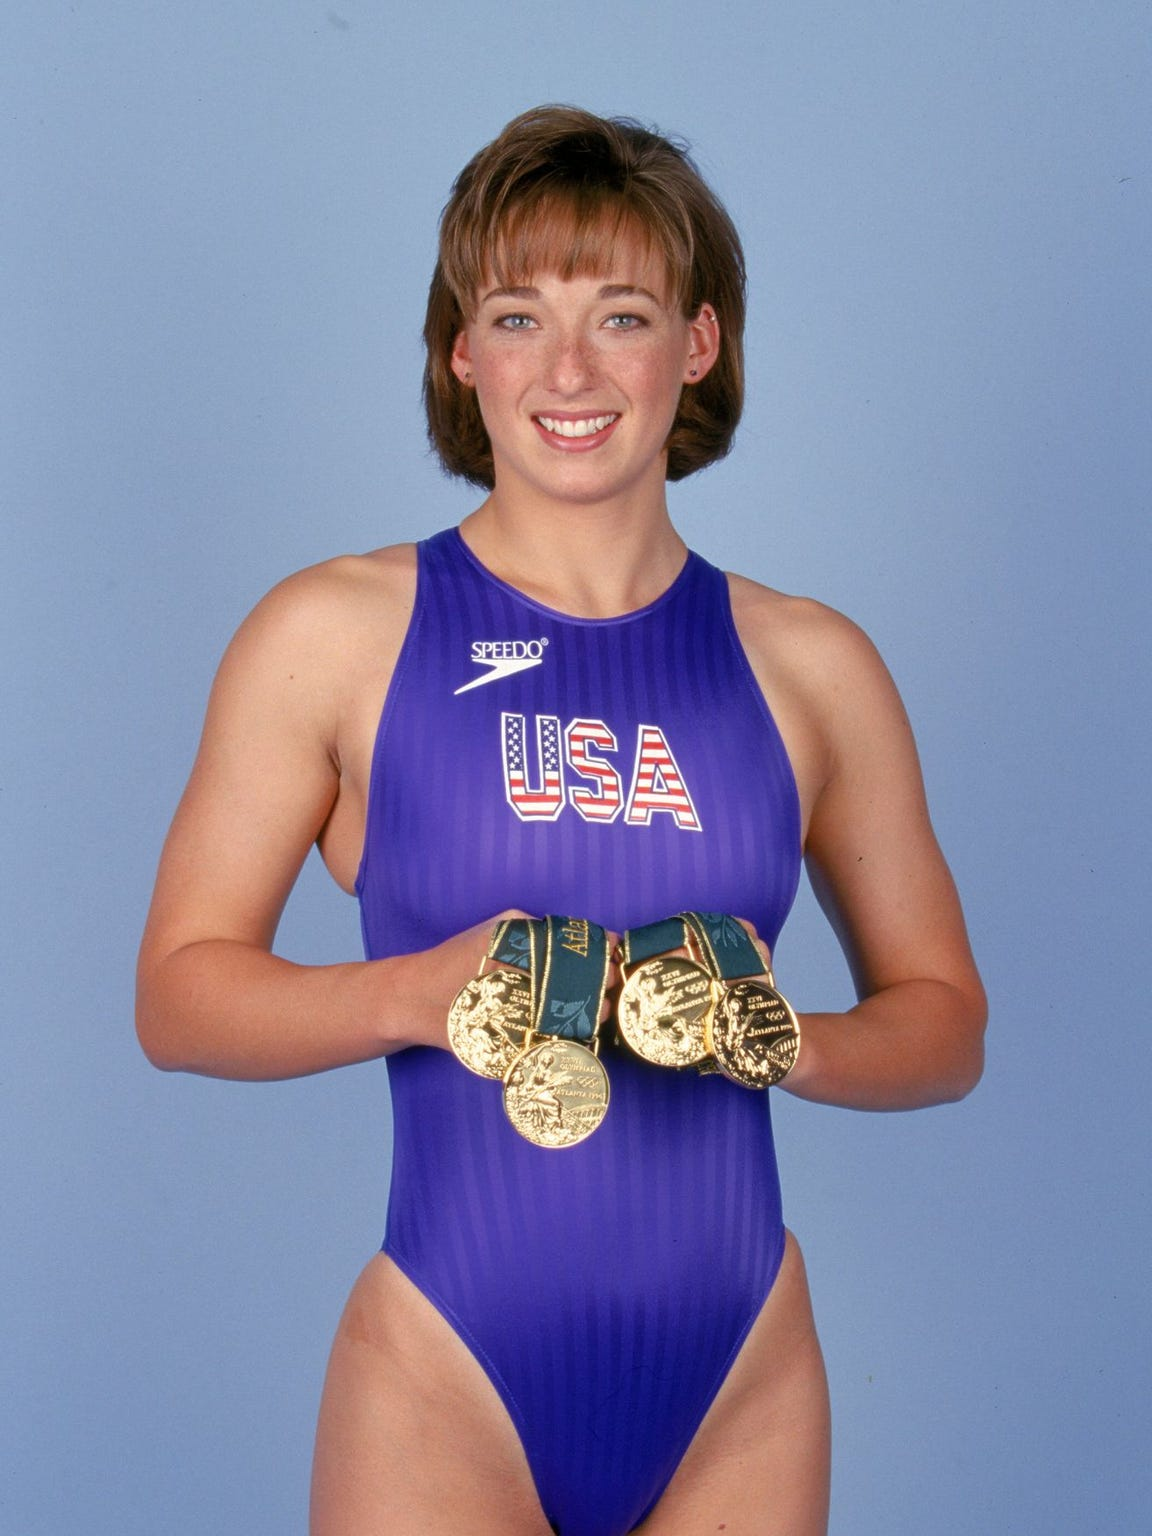 Proving it: Amy Van Dyken with her golds in 1996.